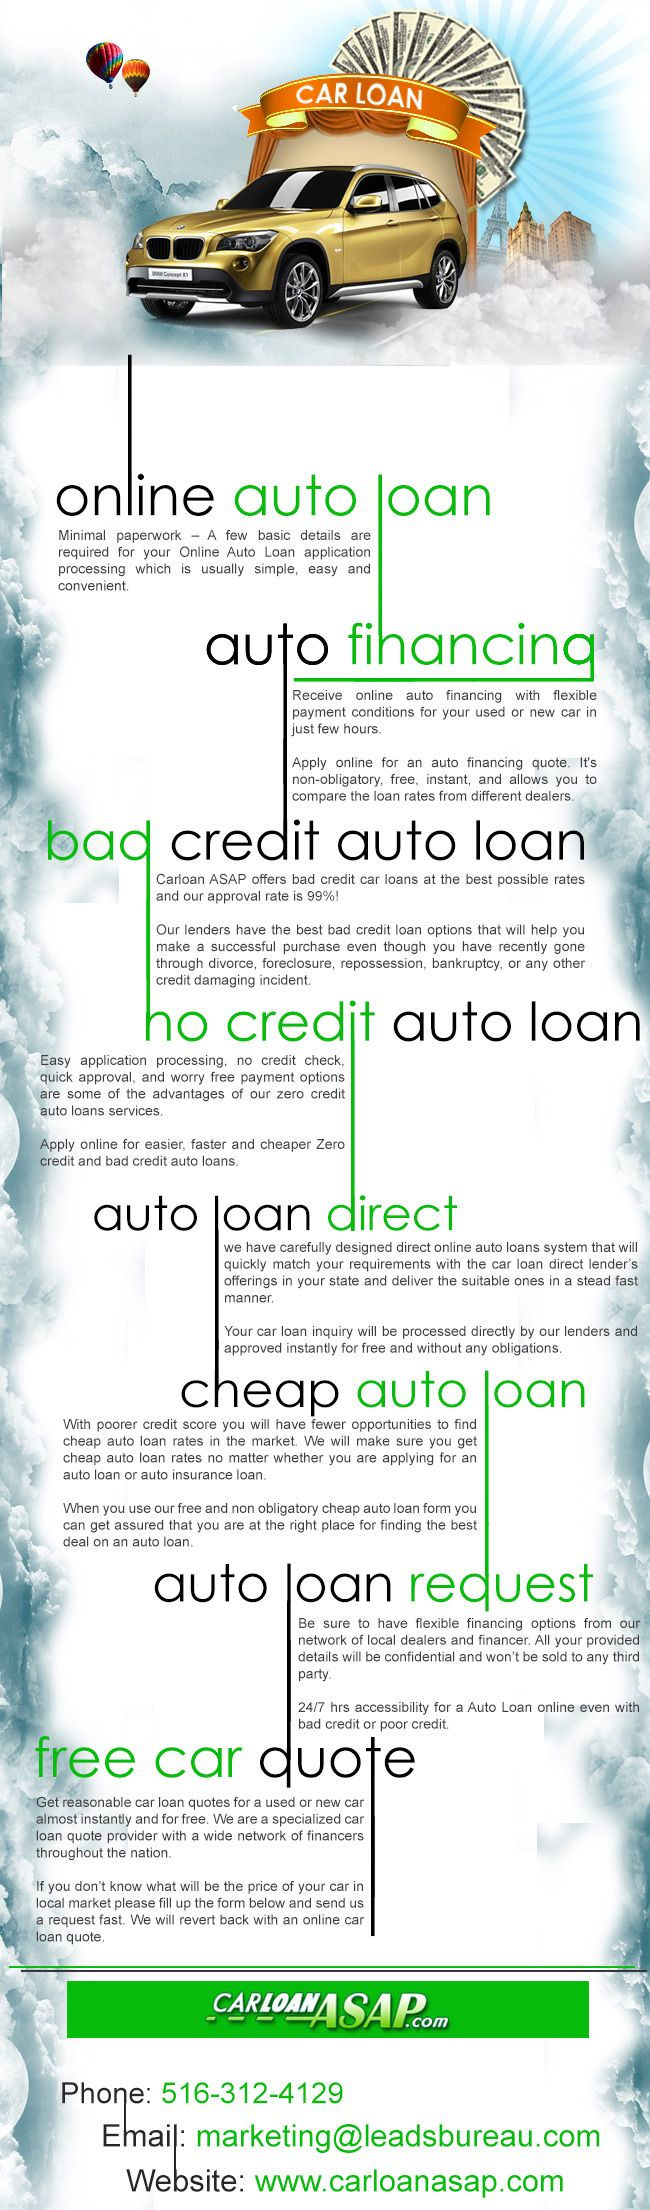 Get online car loan for new cars used cars or refinance with bad credit bankruptcy poor credit or no credit at carloanasap use auto loan calculator to